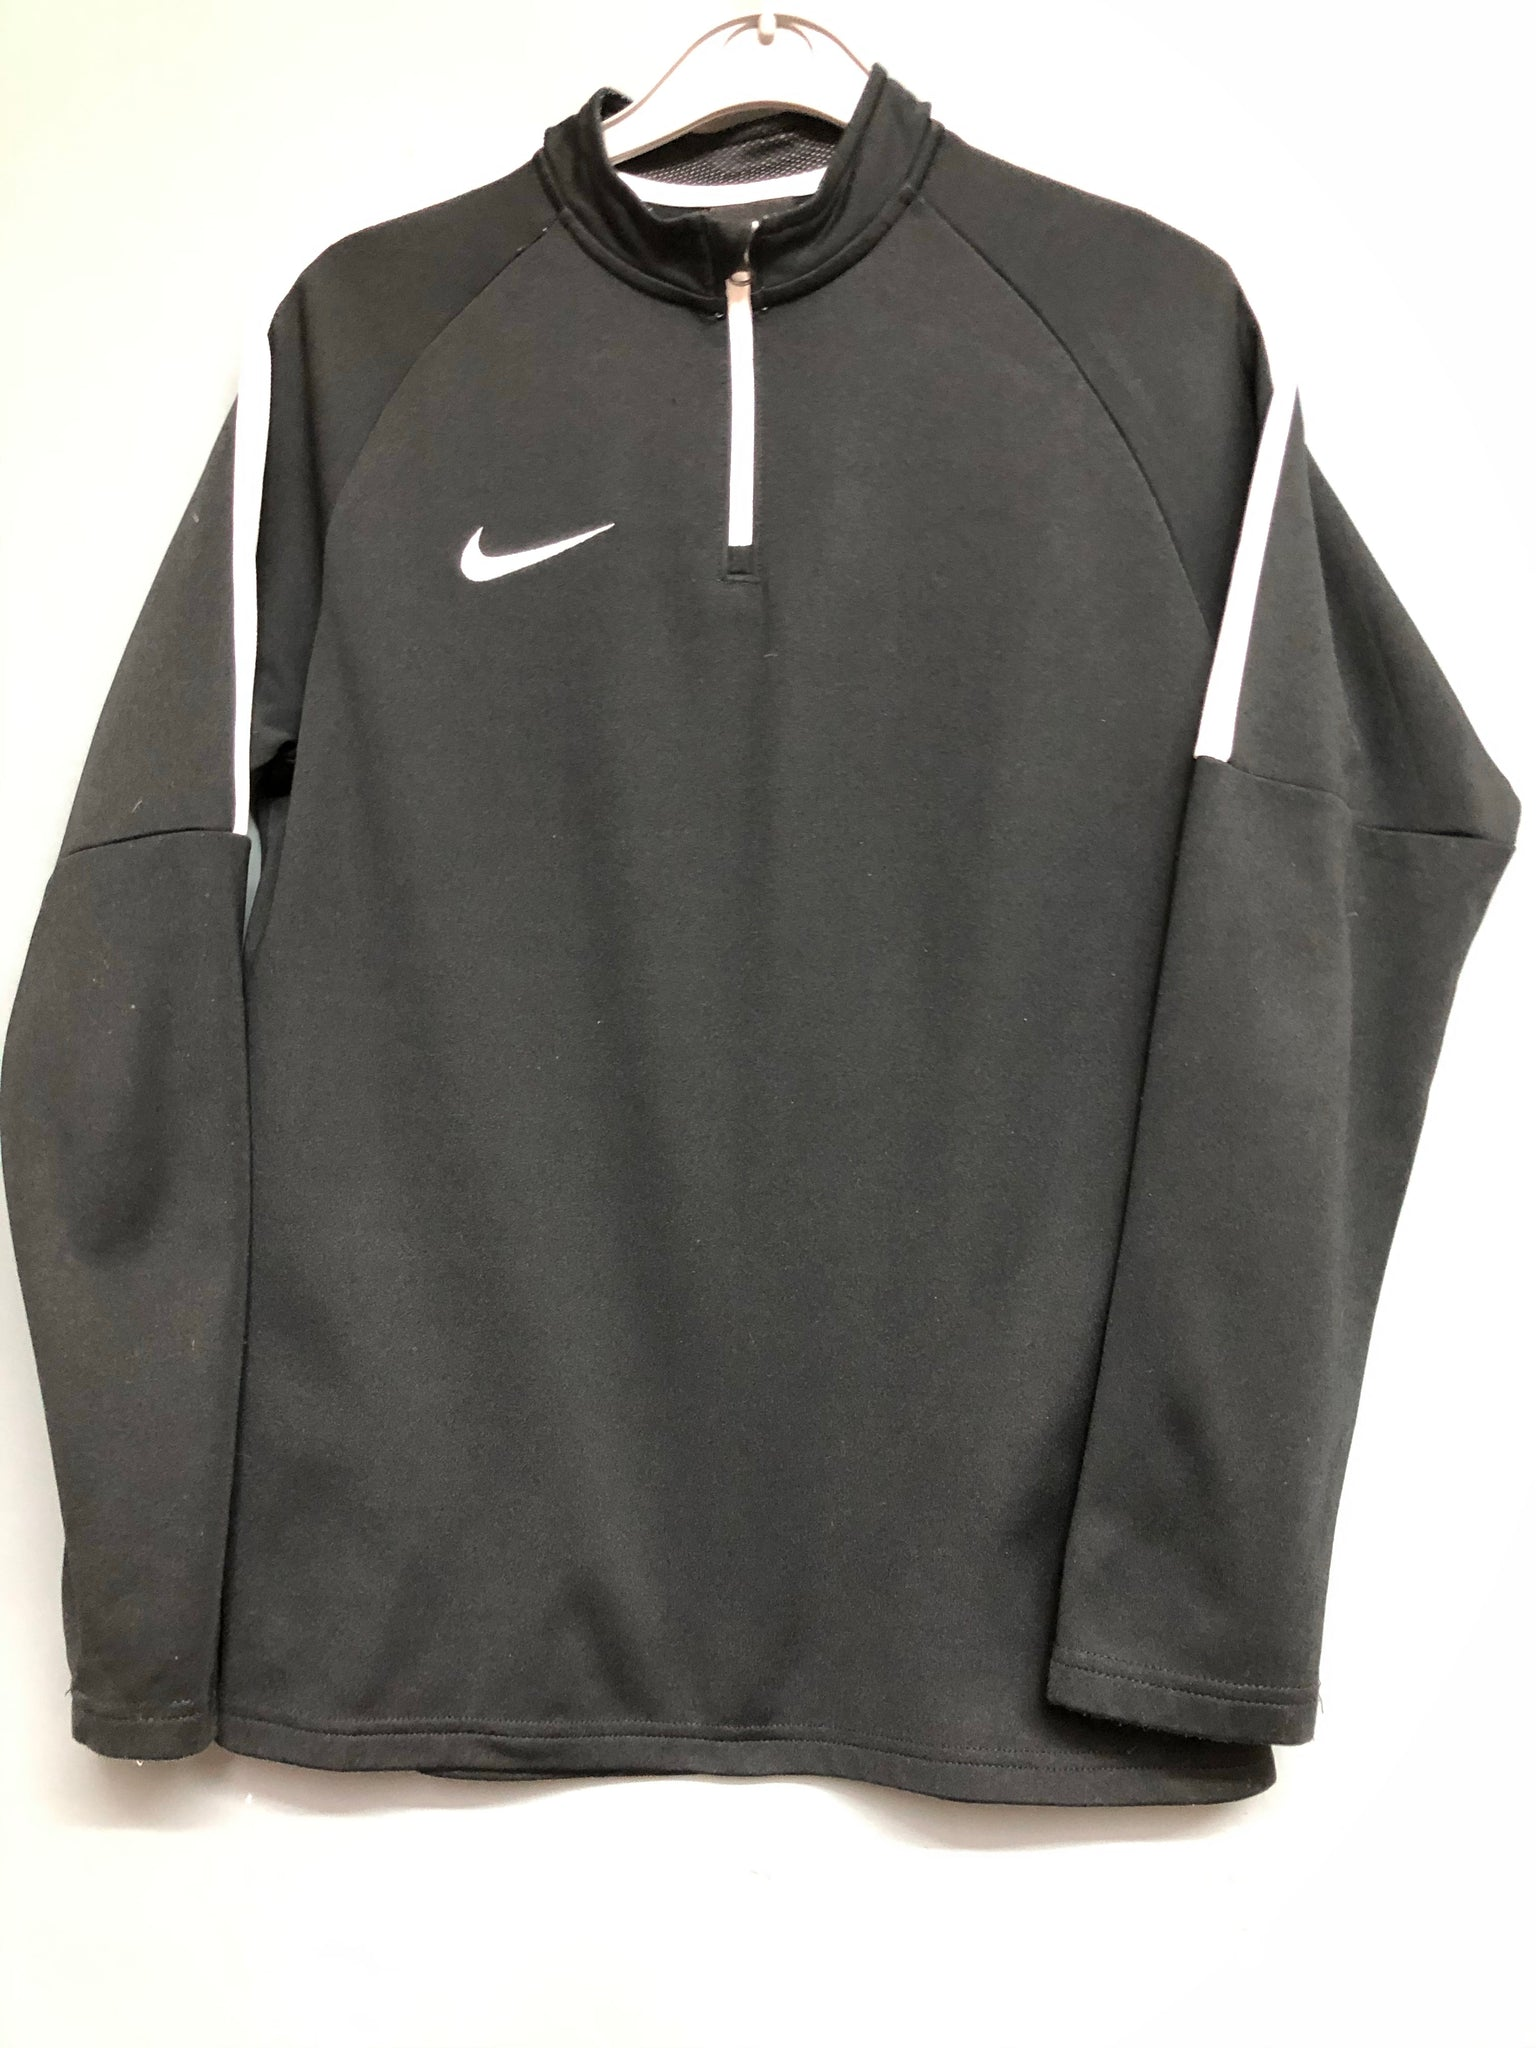 Nike Air Black Dri-Fit Sports Top size XS